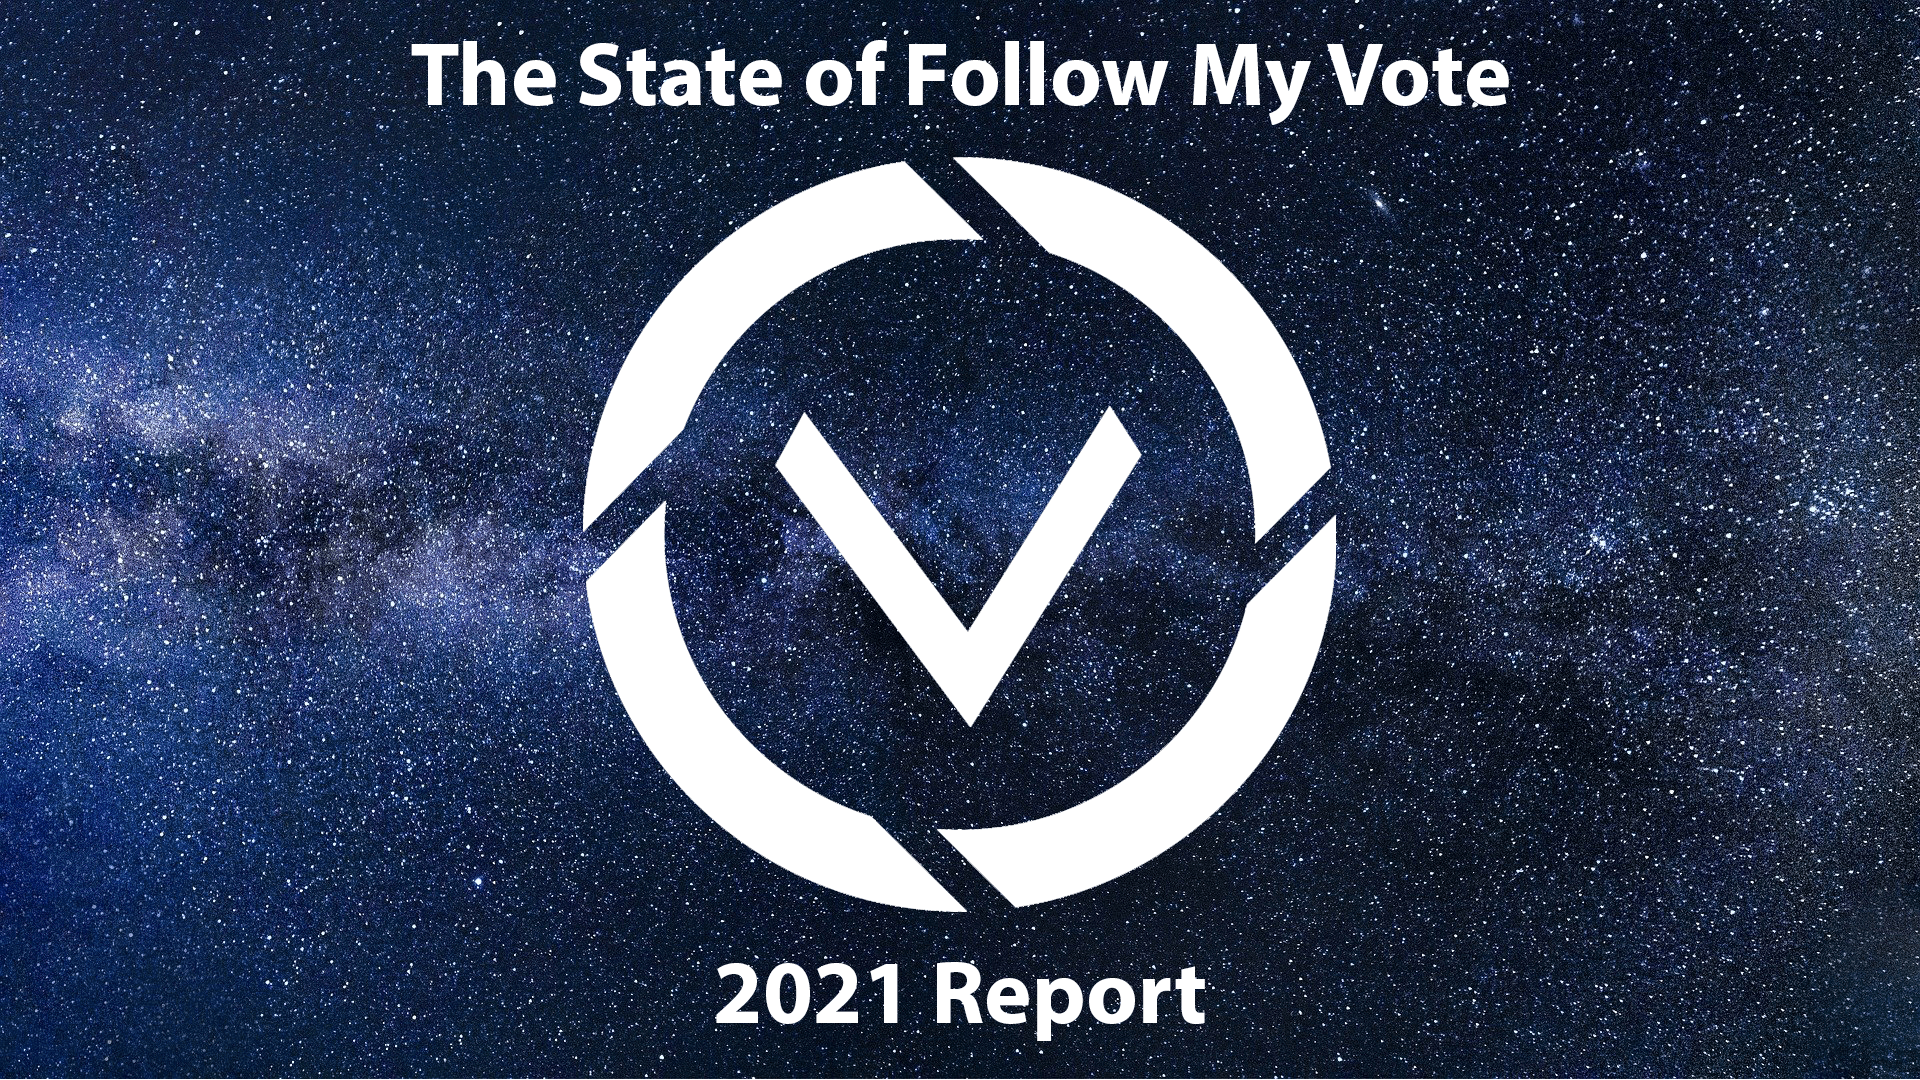 The State of Follow My Vote - 2021 Report